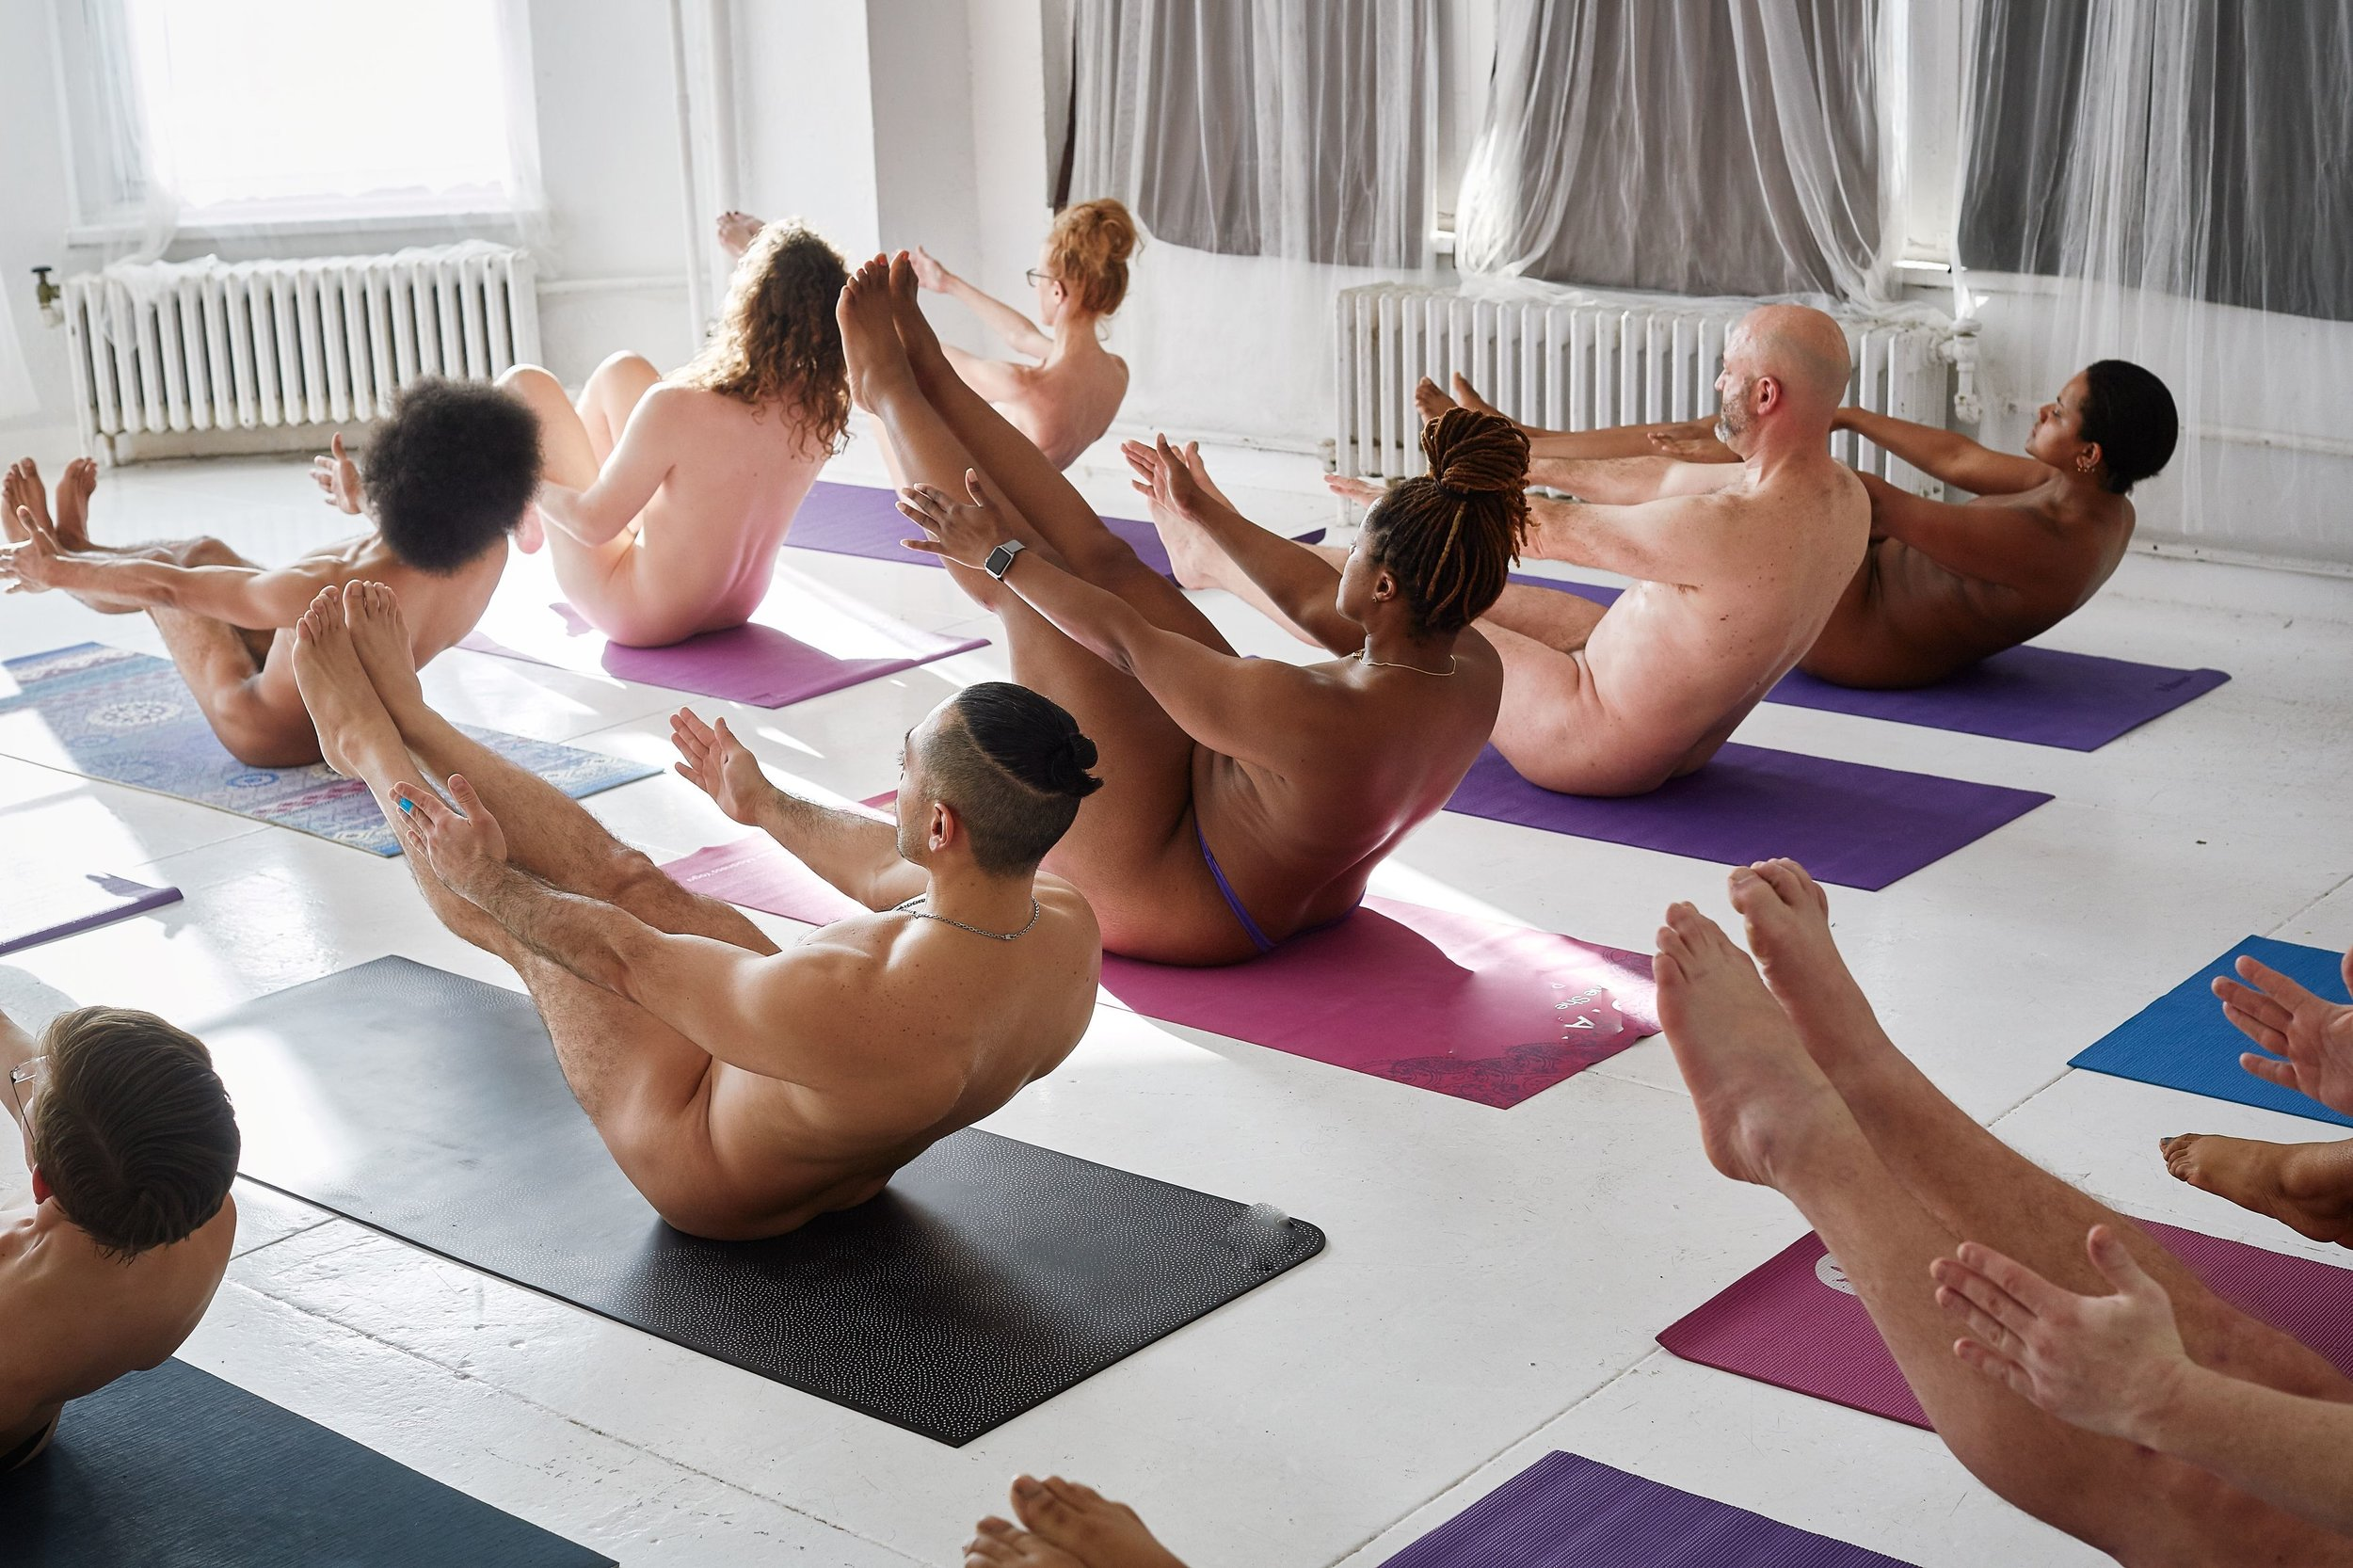 Naked! Yoga & Pilates class with Naked in Motion. All bodies welcome.